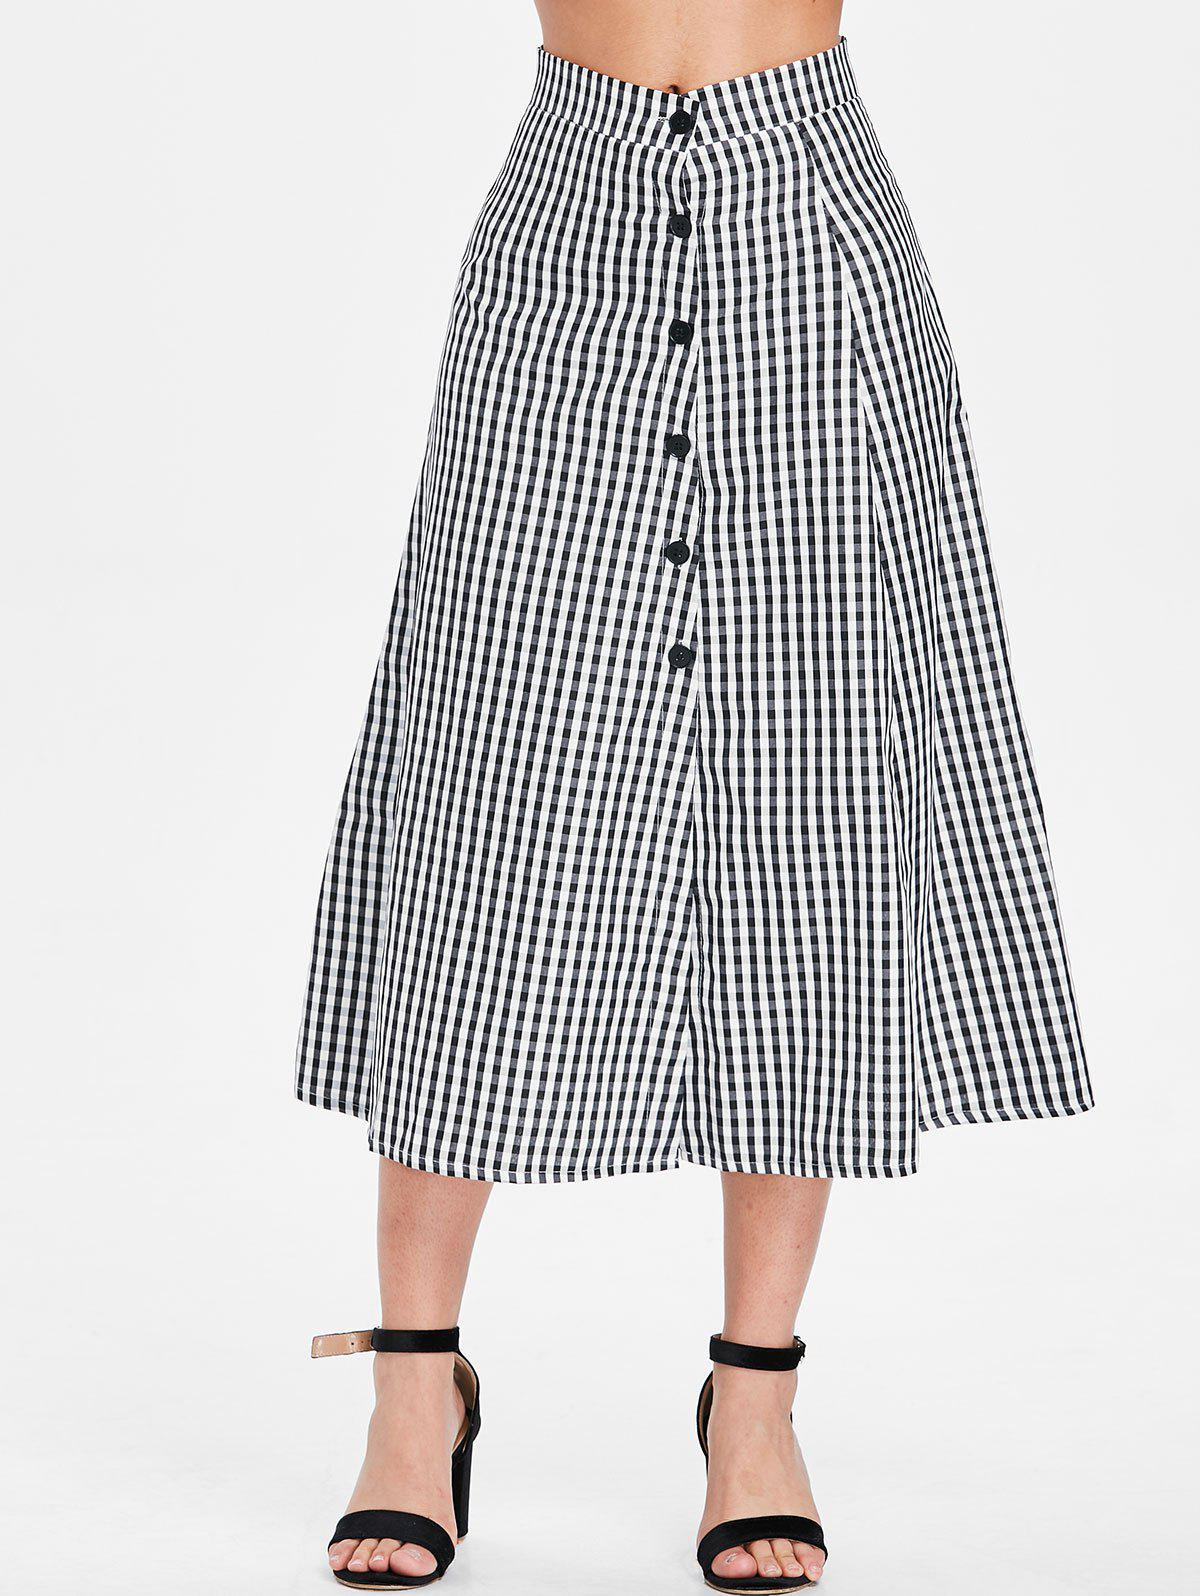 Online Gingham Print Button Embellished Mid Calf Skirt